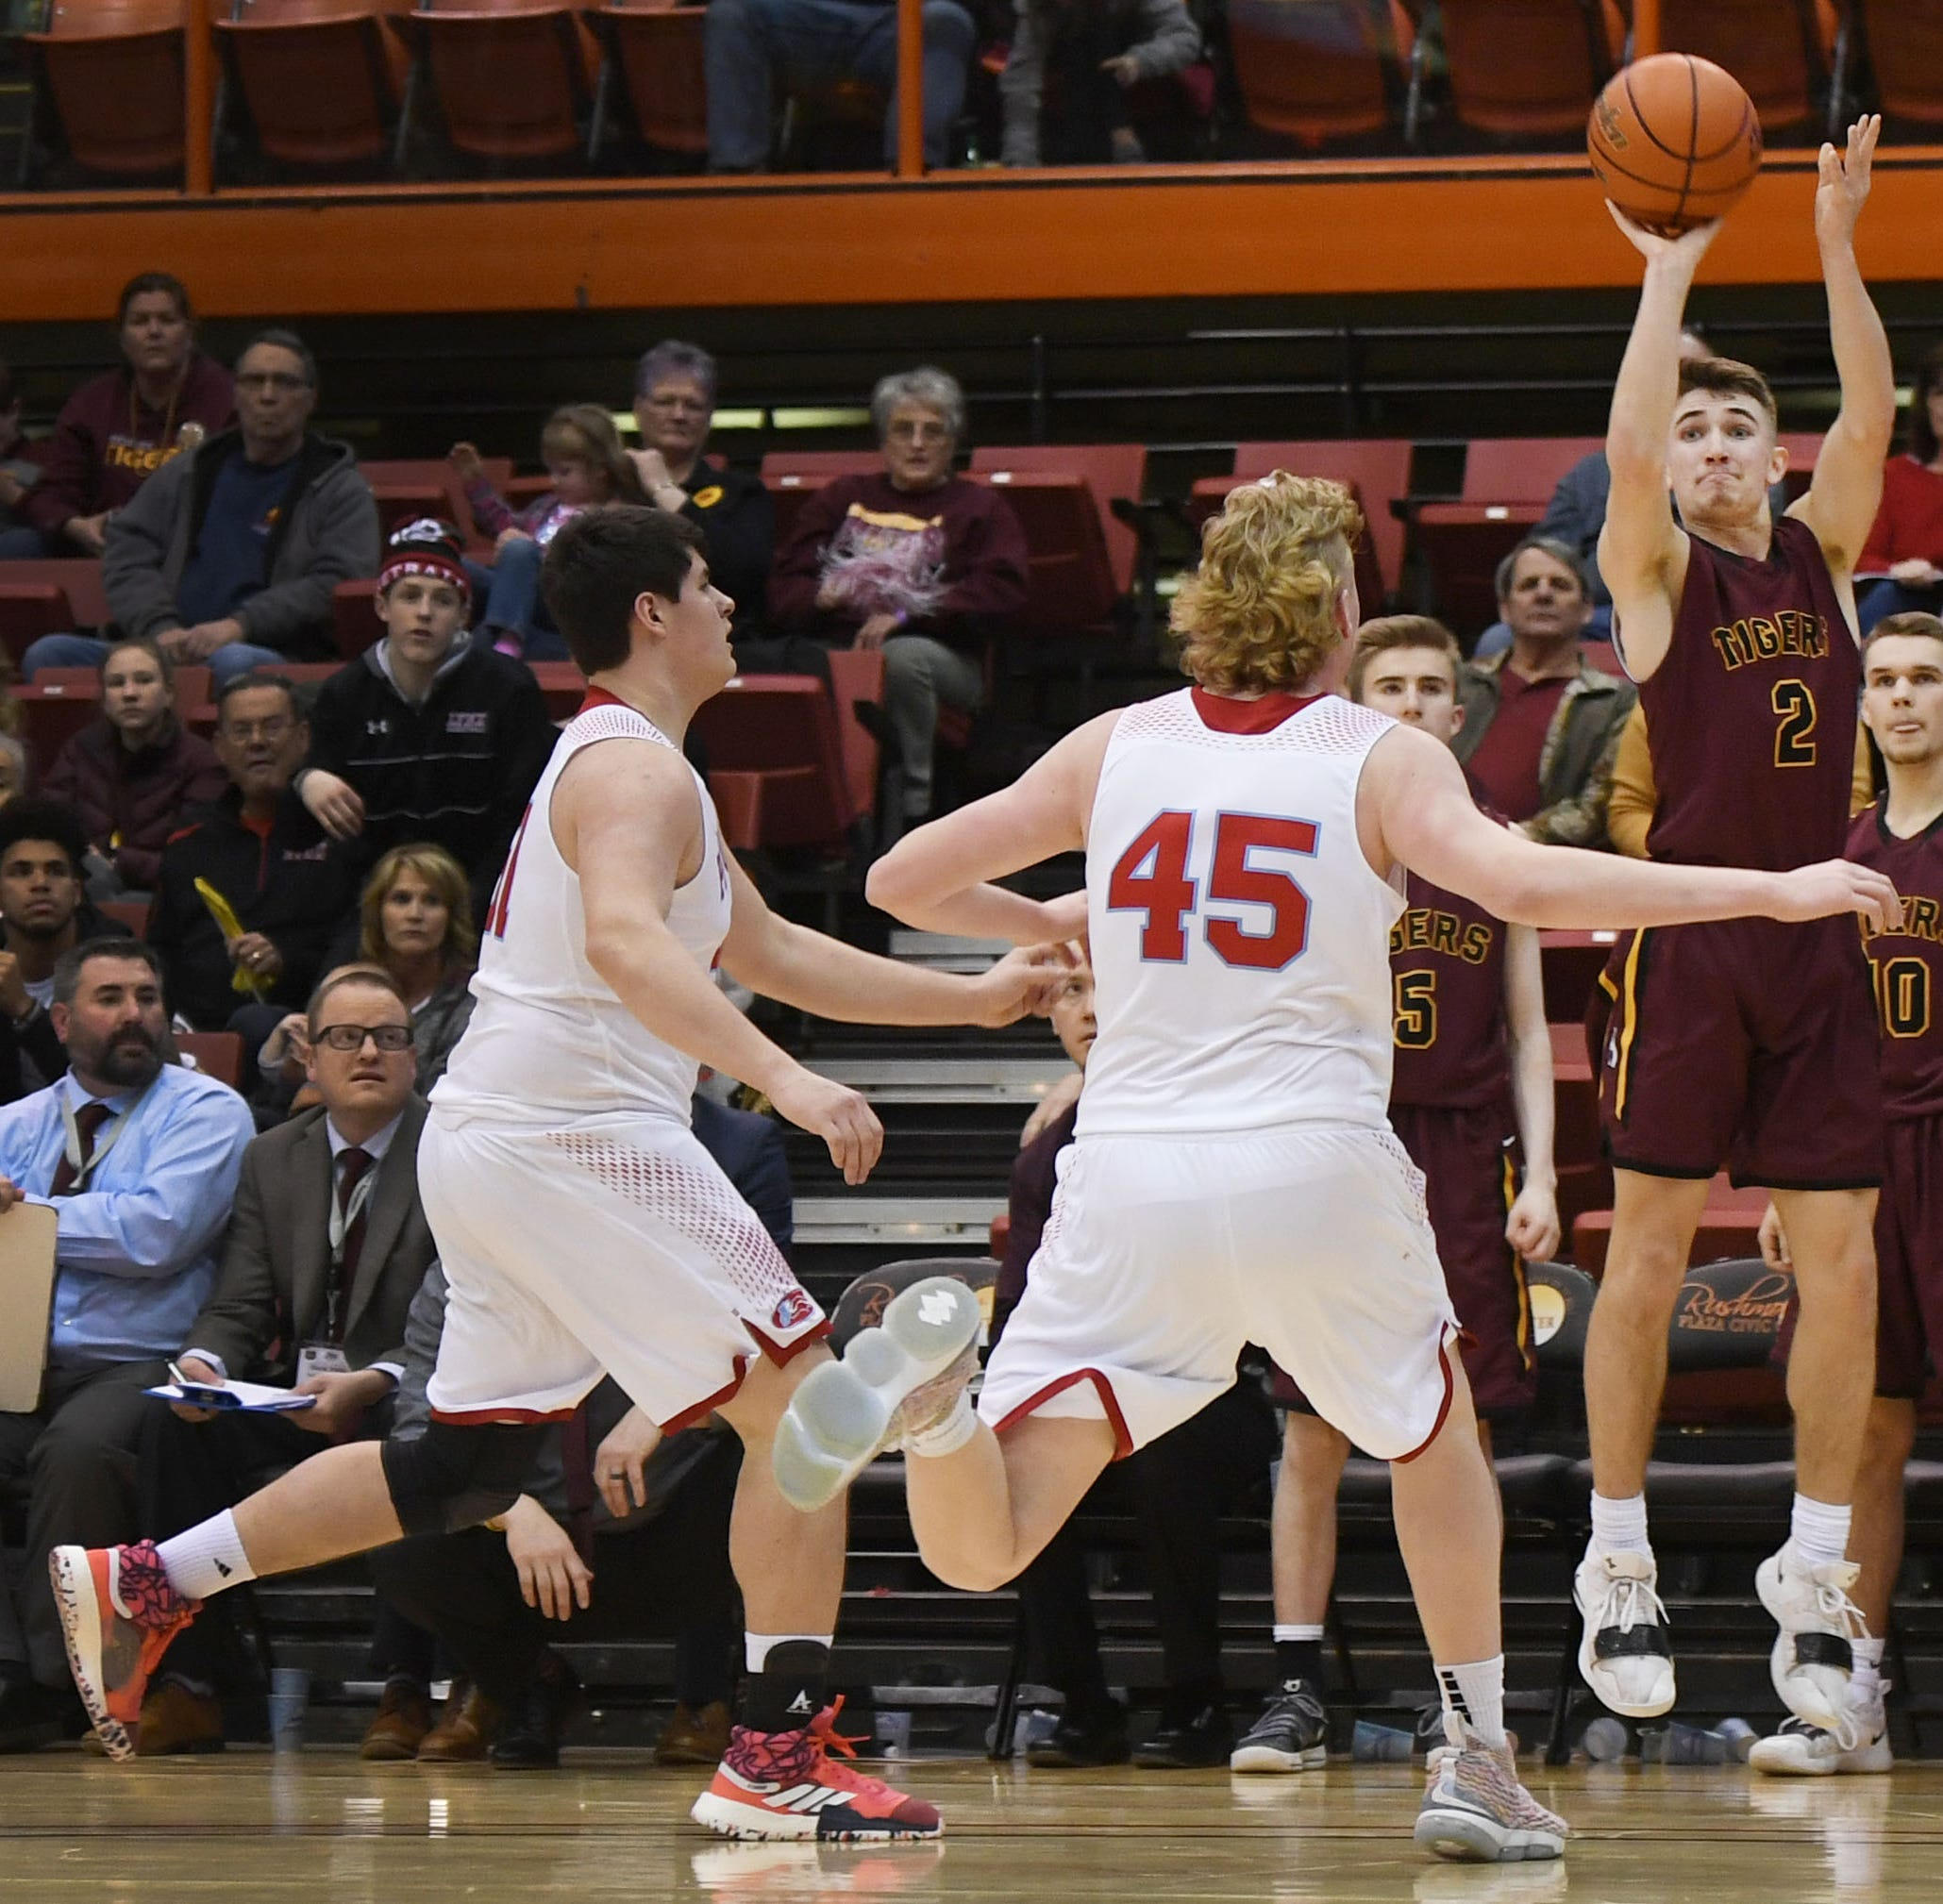 Nick Hoyt's late 3 leads No. 8 Harrisburg to upset of No. 1 Lincoln